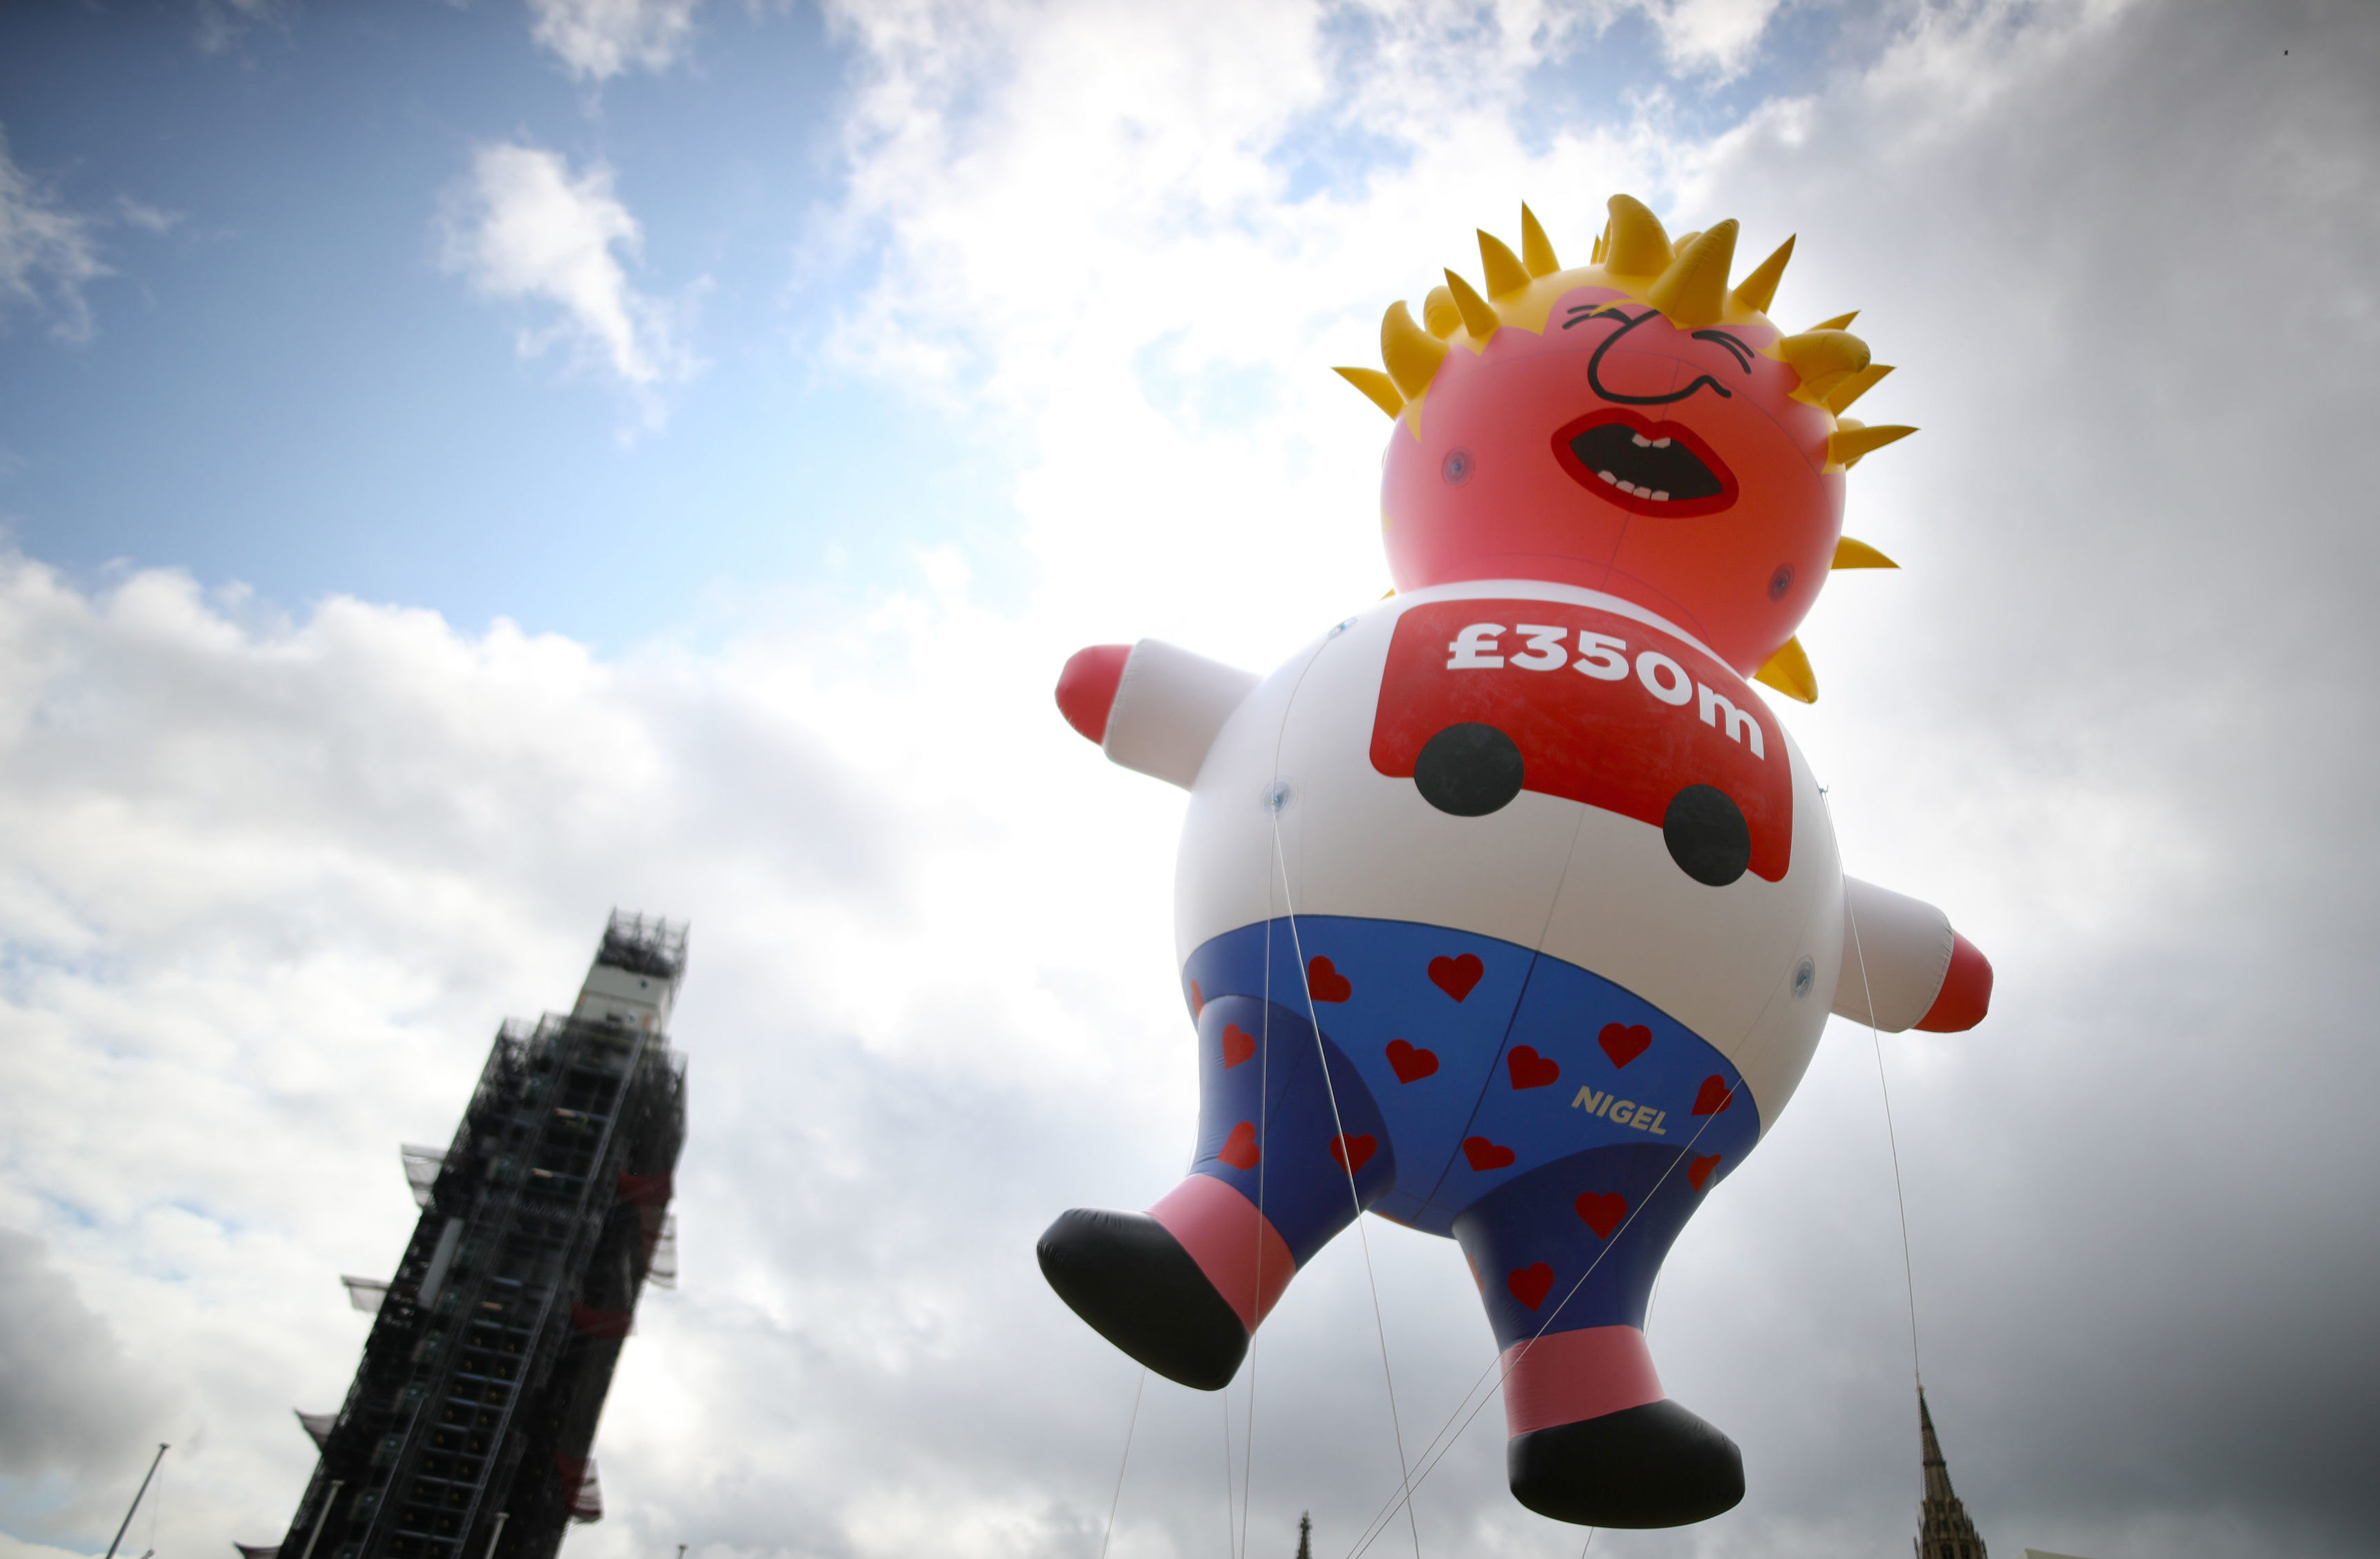 A blimp depicting Boris Johnson is launched in Parliament Square, London, ahead of a pro-European Union a march organised by March for Change.